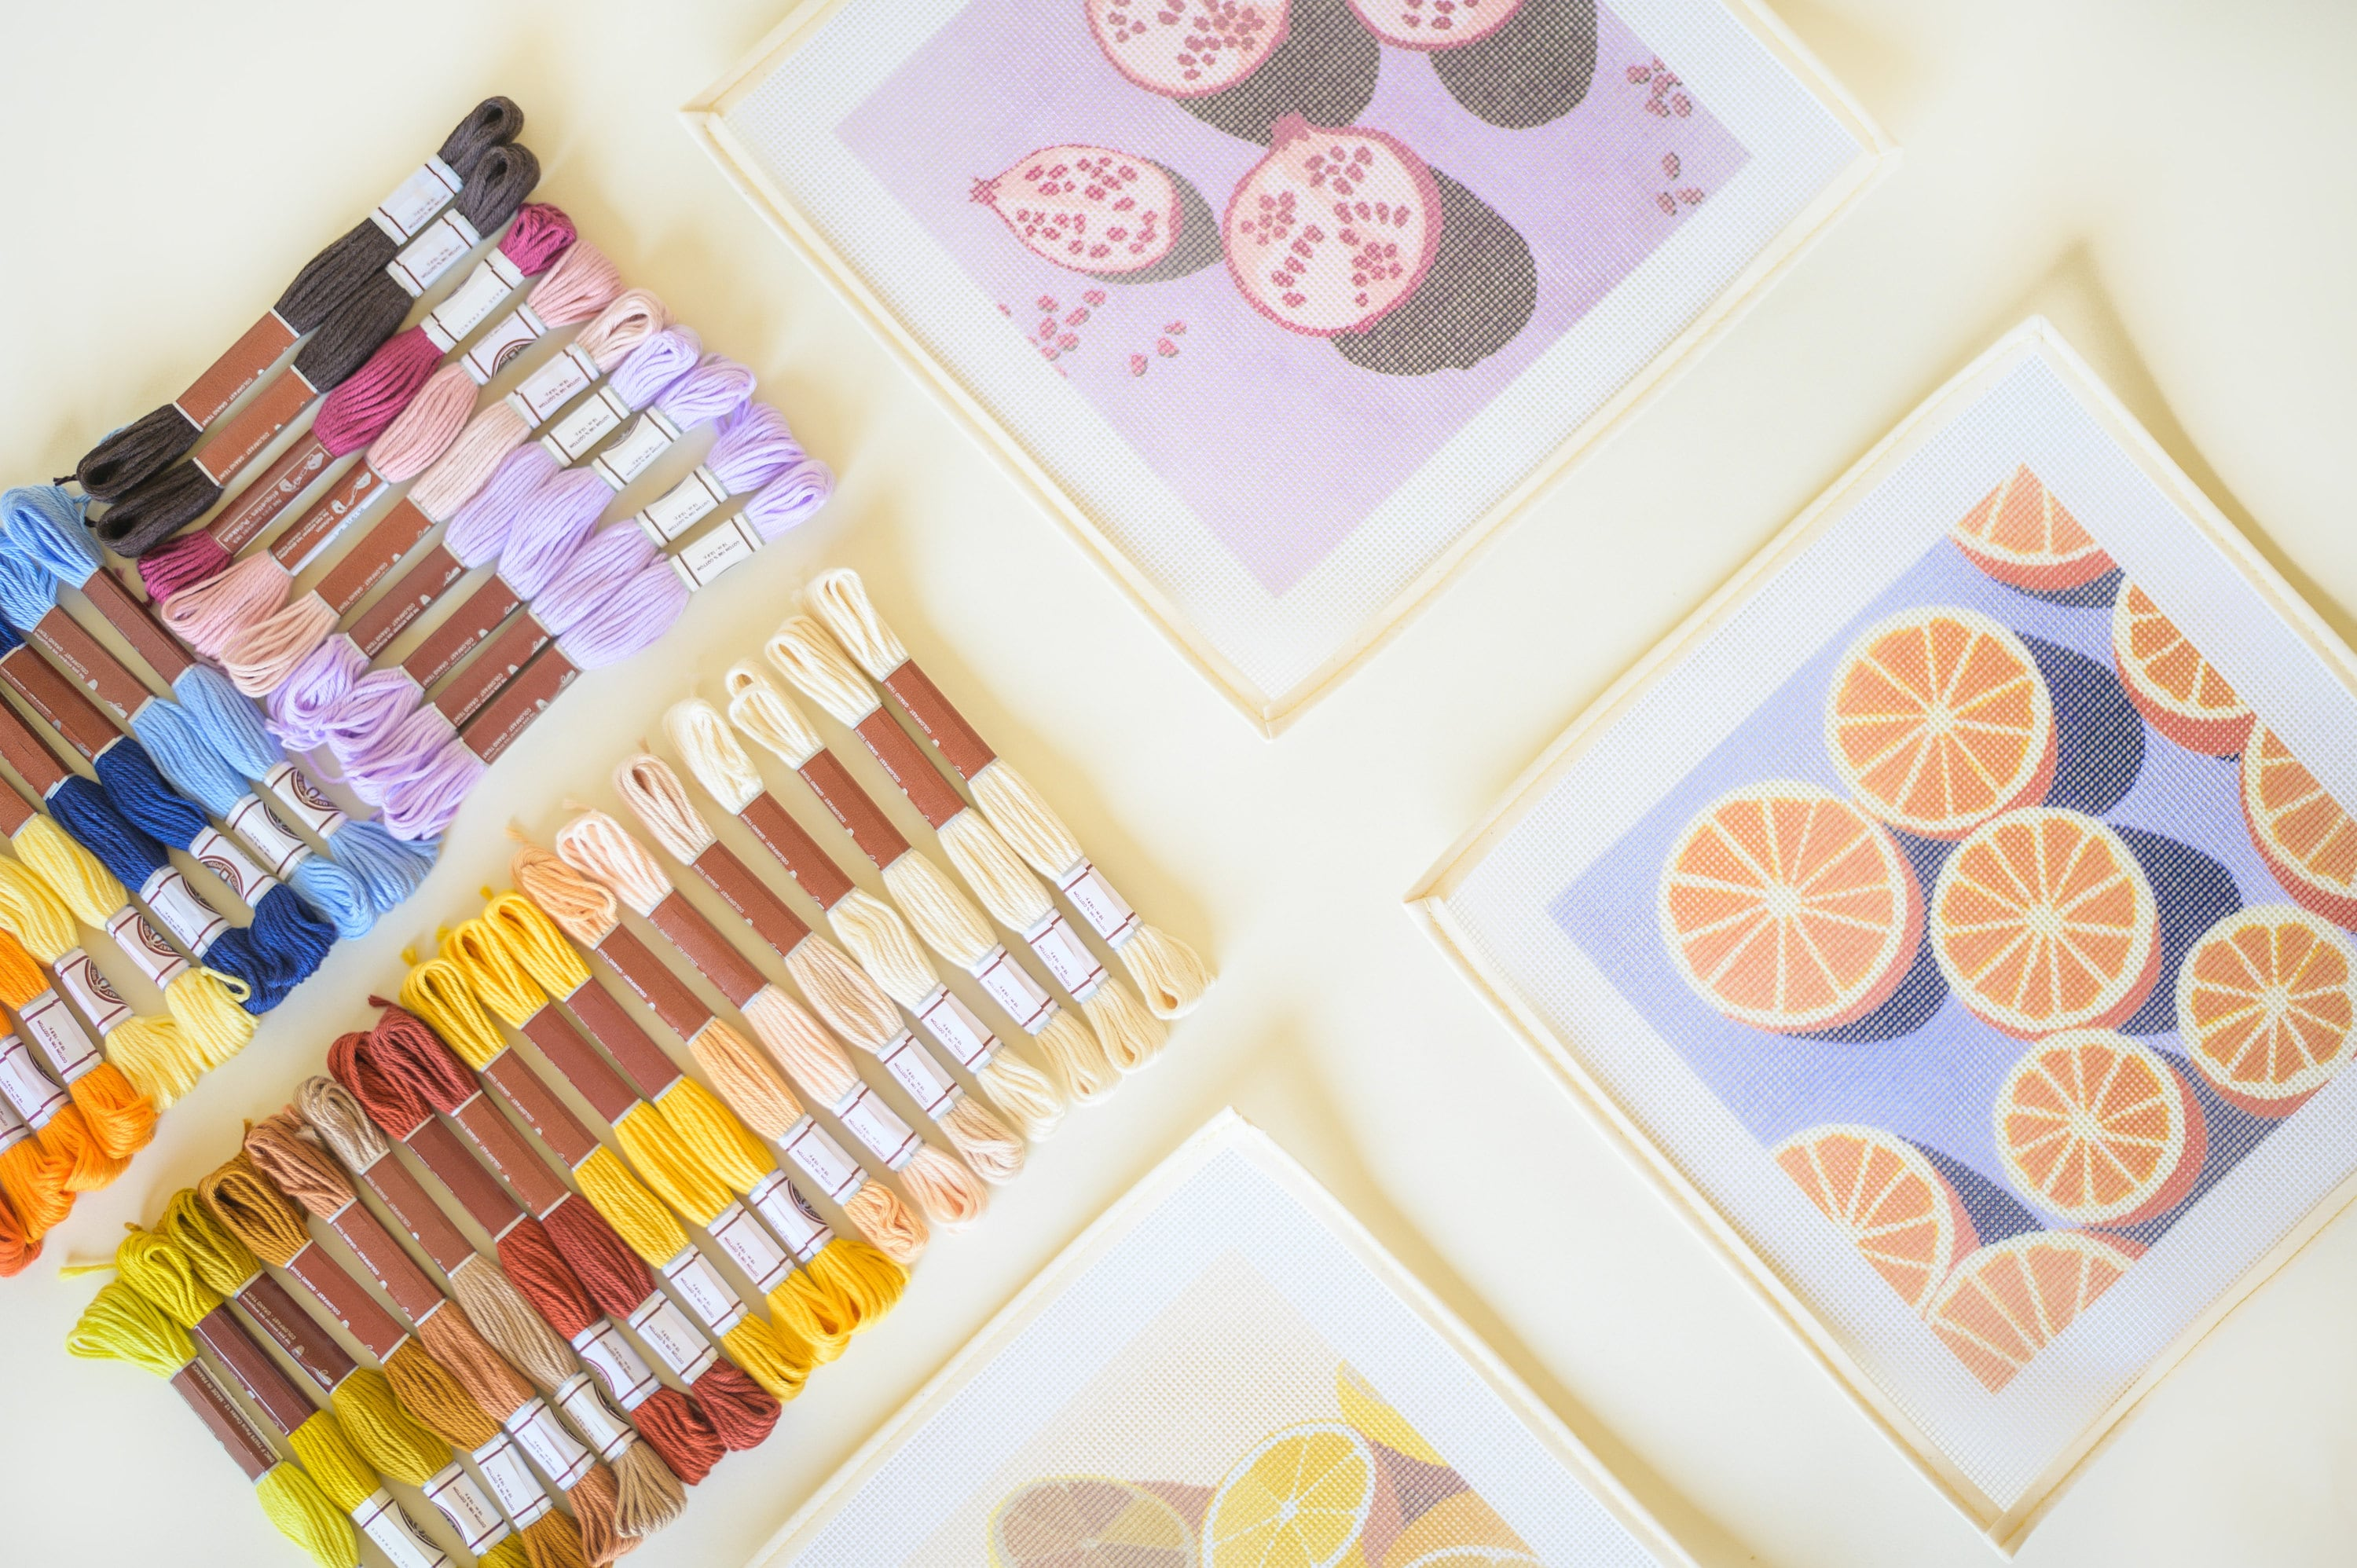 Pomegranates, Oranges and Lemons needlepoint kits from Unwind Studio designed by Laura Croft, Ana Popescu and Anca Putin with a colourful range of soft cotton threads.